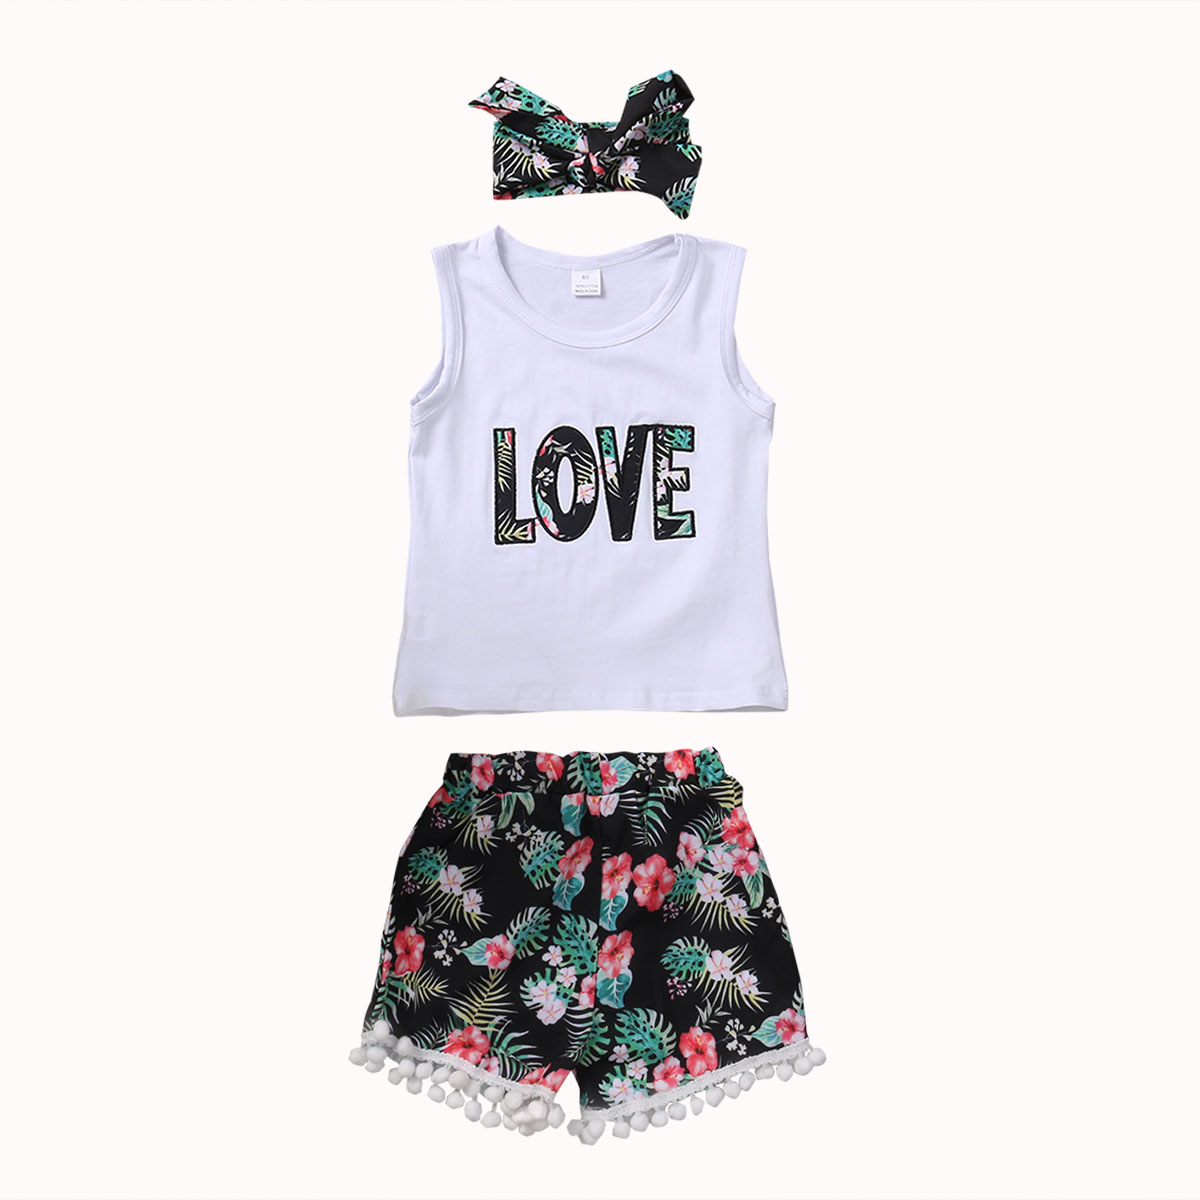 Cotton Newborn Baby Girls LOVE Tops T-shirt+Floral Pants + Headand 3Pcs Summer Outfits Clothes Set 1-6T 3pcs set newborn infant baby boy girl clothes 2017 summer short sleeve leopard floral romper bodysuit headband shoes outfits